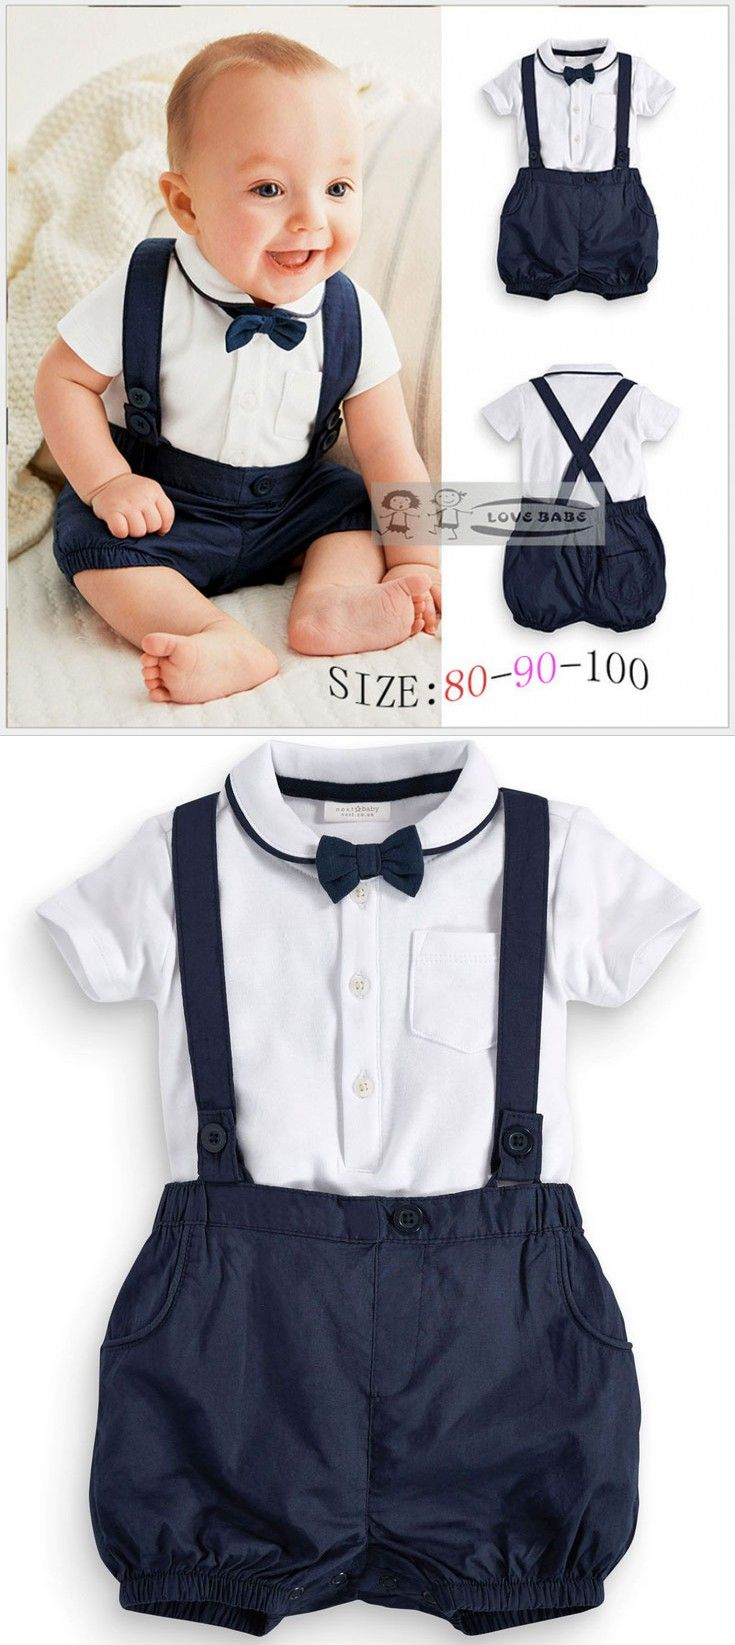 15b74b2c0e08 Summer Baby Clothing Cotton 2pcs Suit Short Infant Boy Gentleman ...